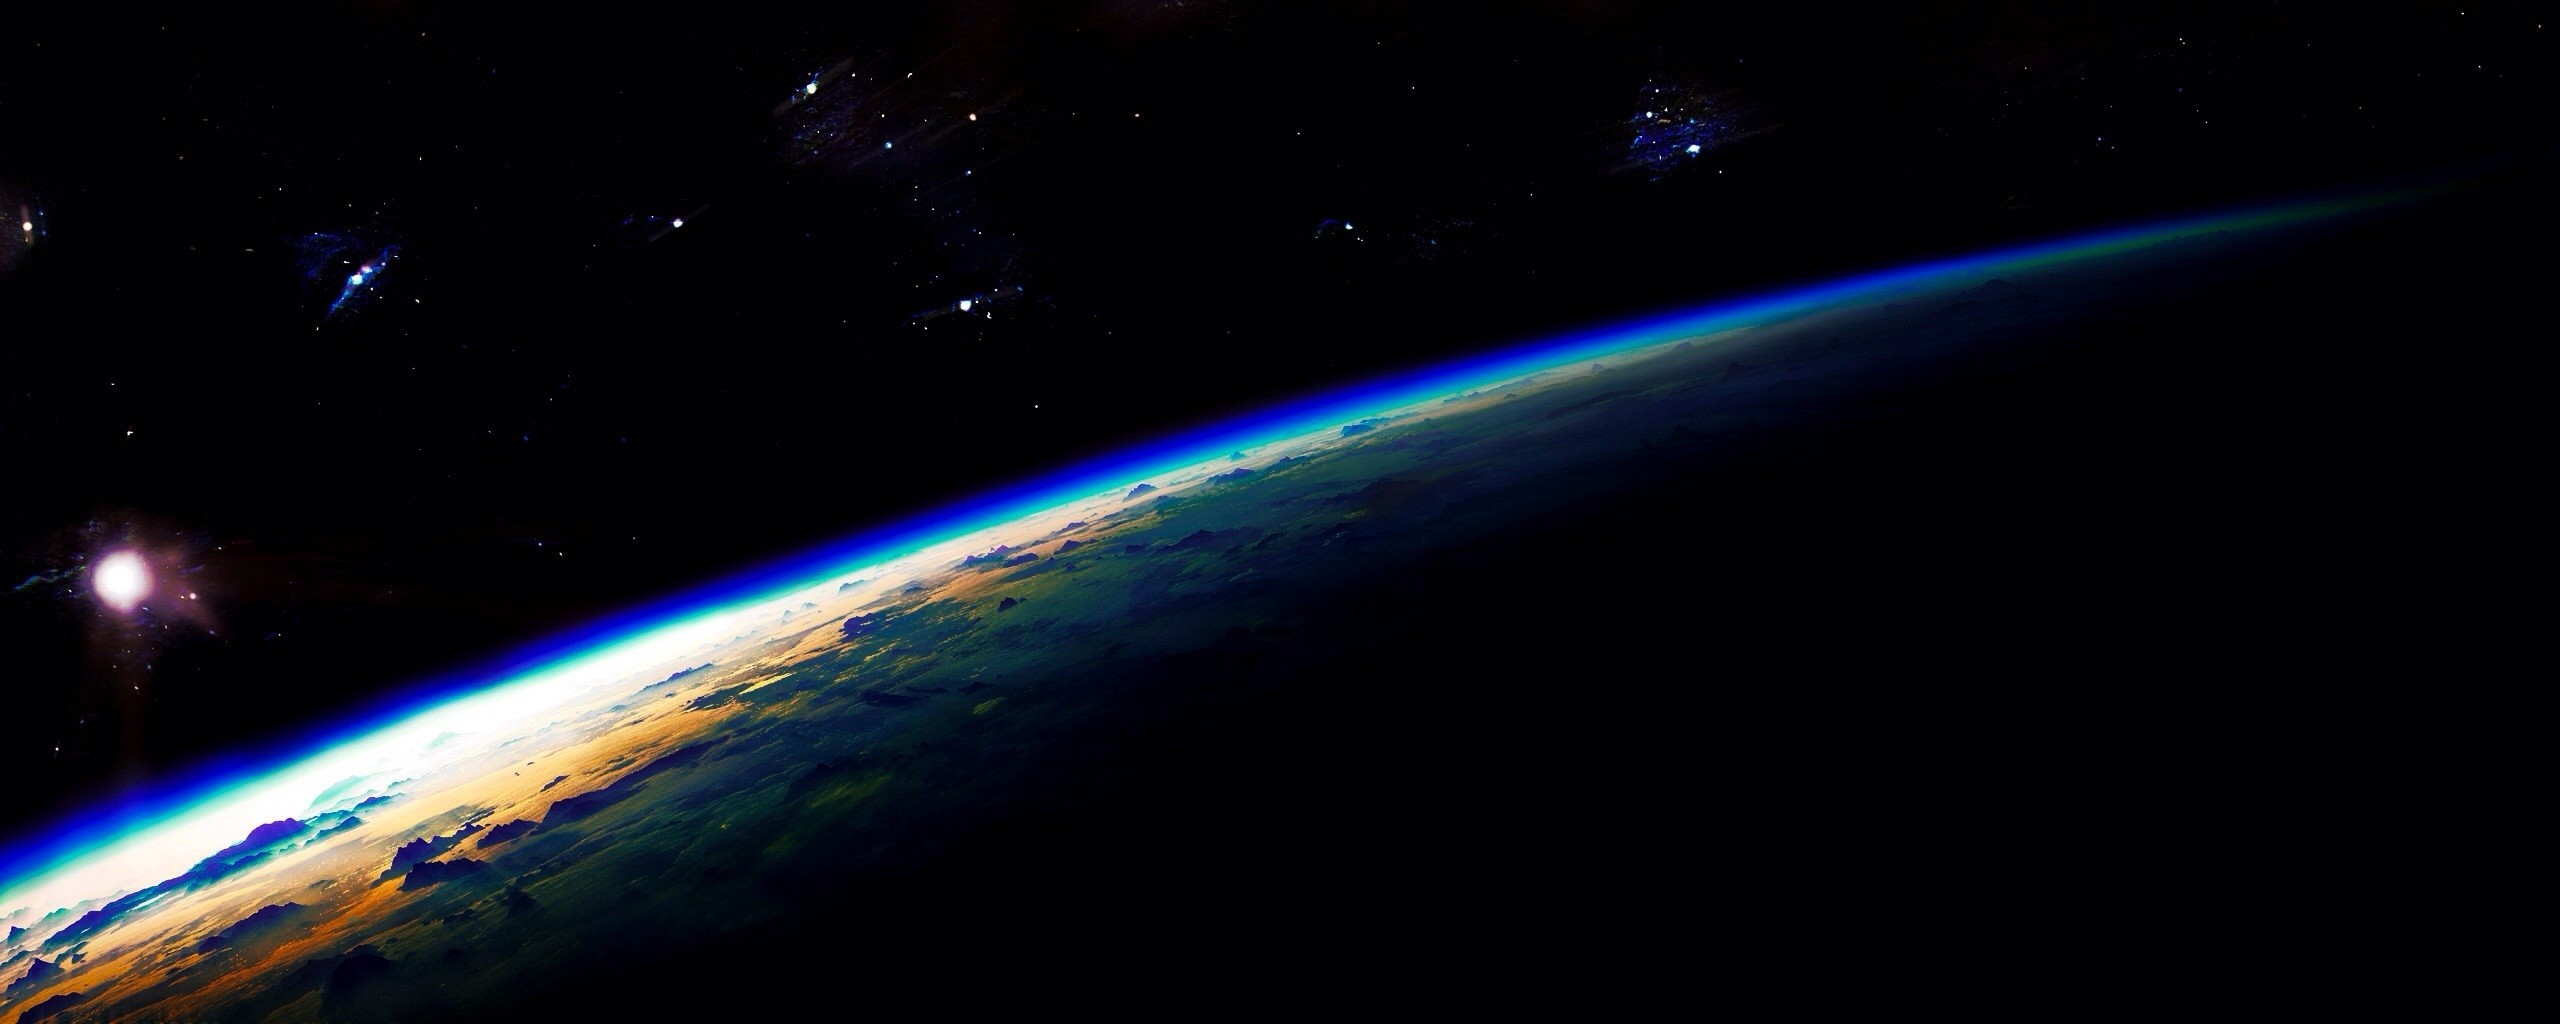 Earth From Space 5 Desktop Background - Hivewallpaper.com